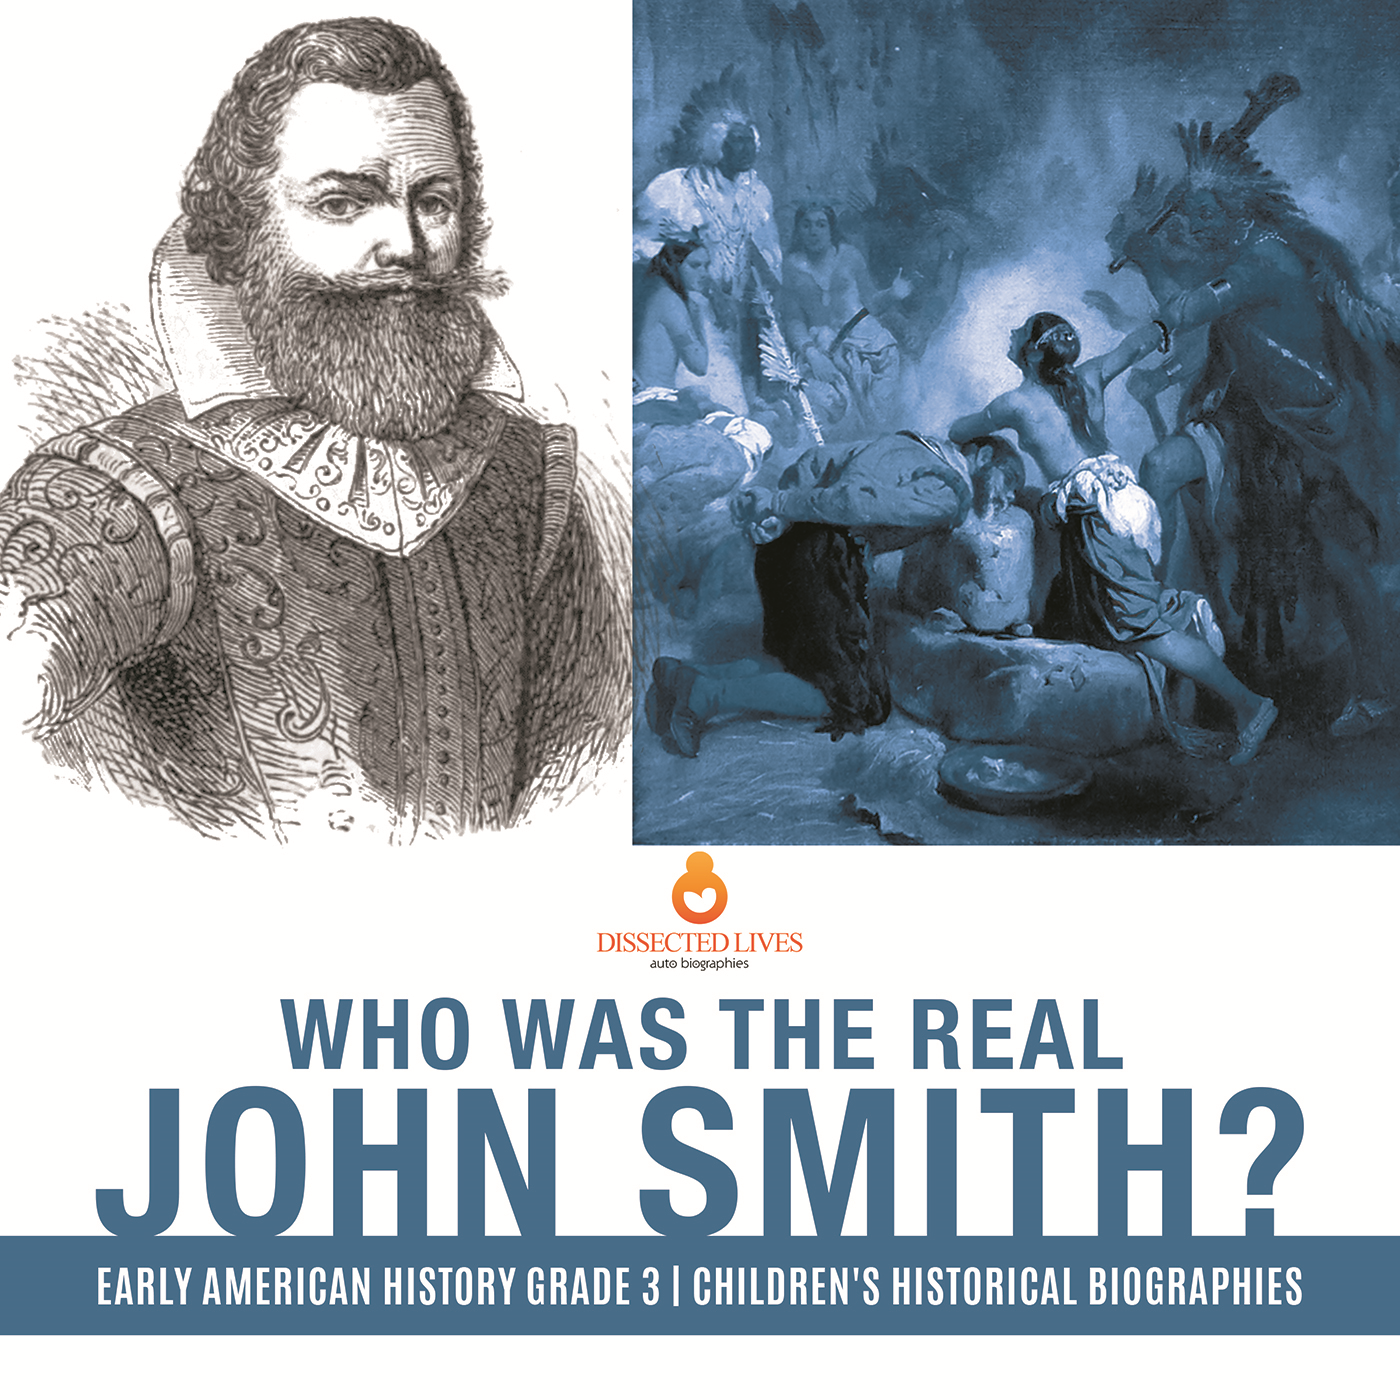 Who Was the Real John Smith? | Early American History Grade 3 | Children's Historical Biographies